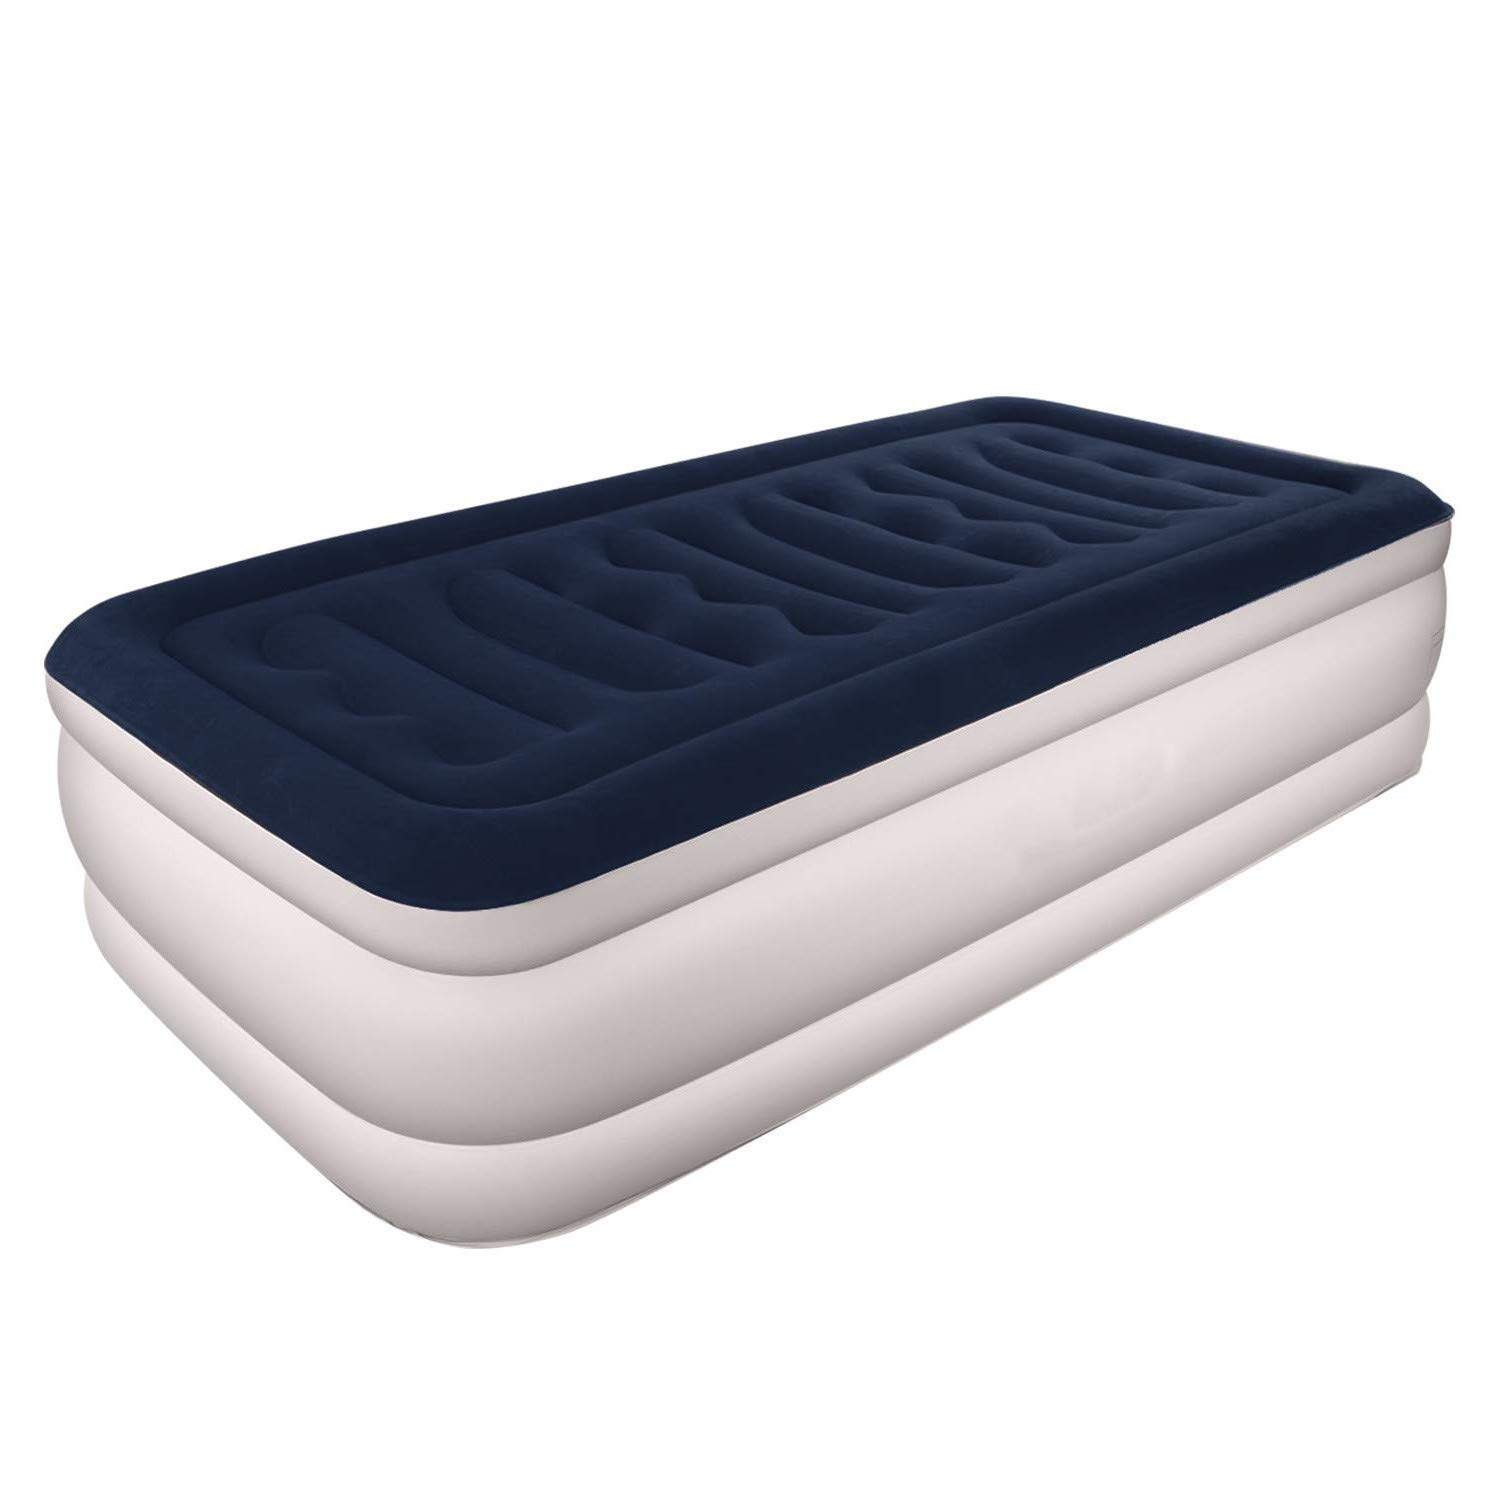 OLRITRON Inflatable Air Bed, Single Size Mattress Single Air Bed, 75 X 39 X 18 in(191 x 99 x 46 cm), with a built-in Electric Air Pump, Max.Capacity 249 kg(550 lb)